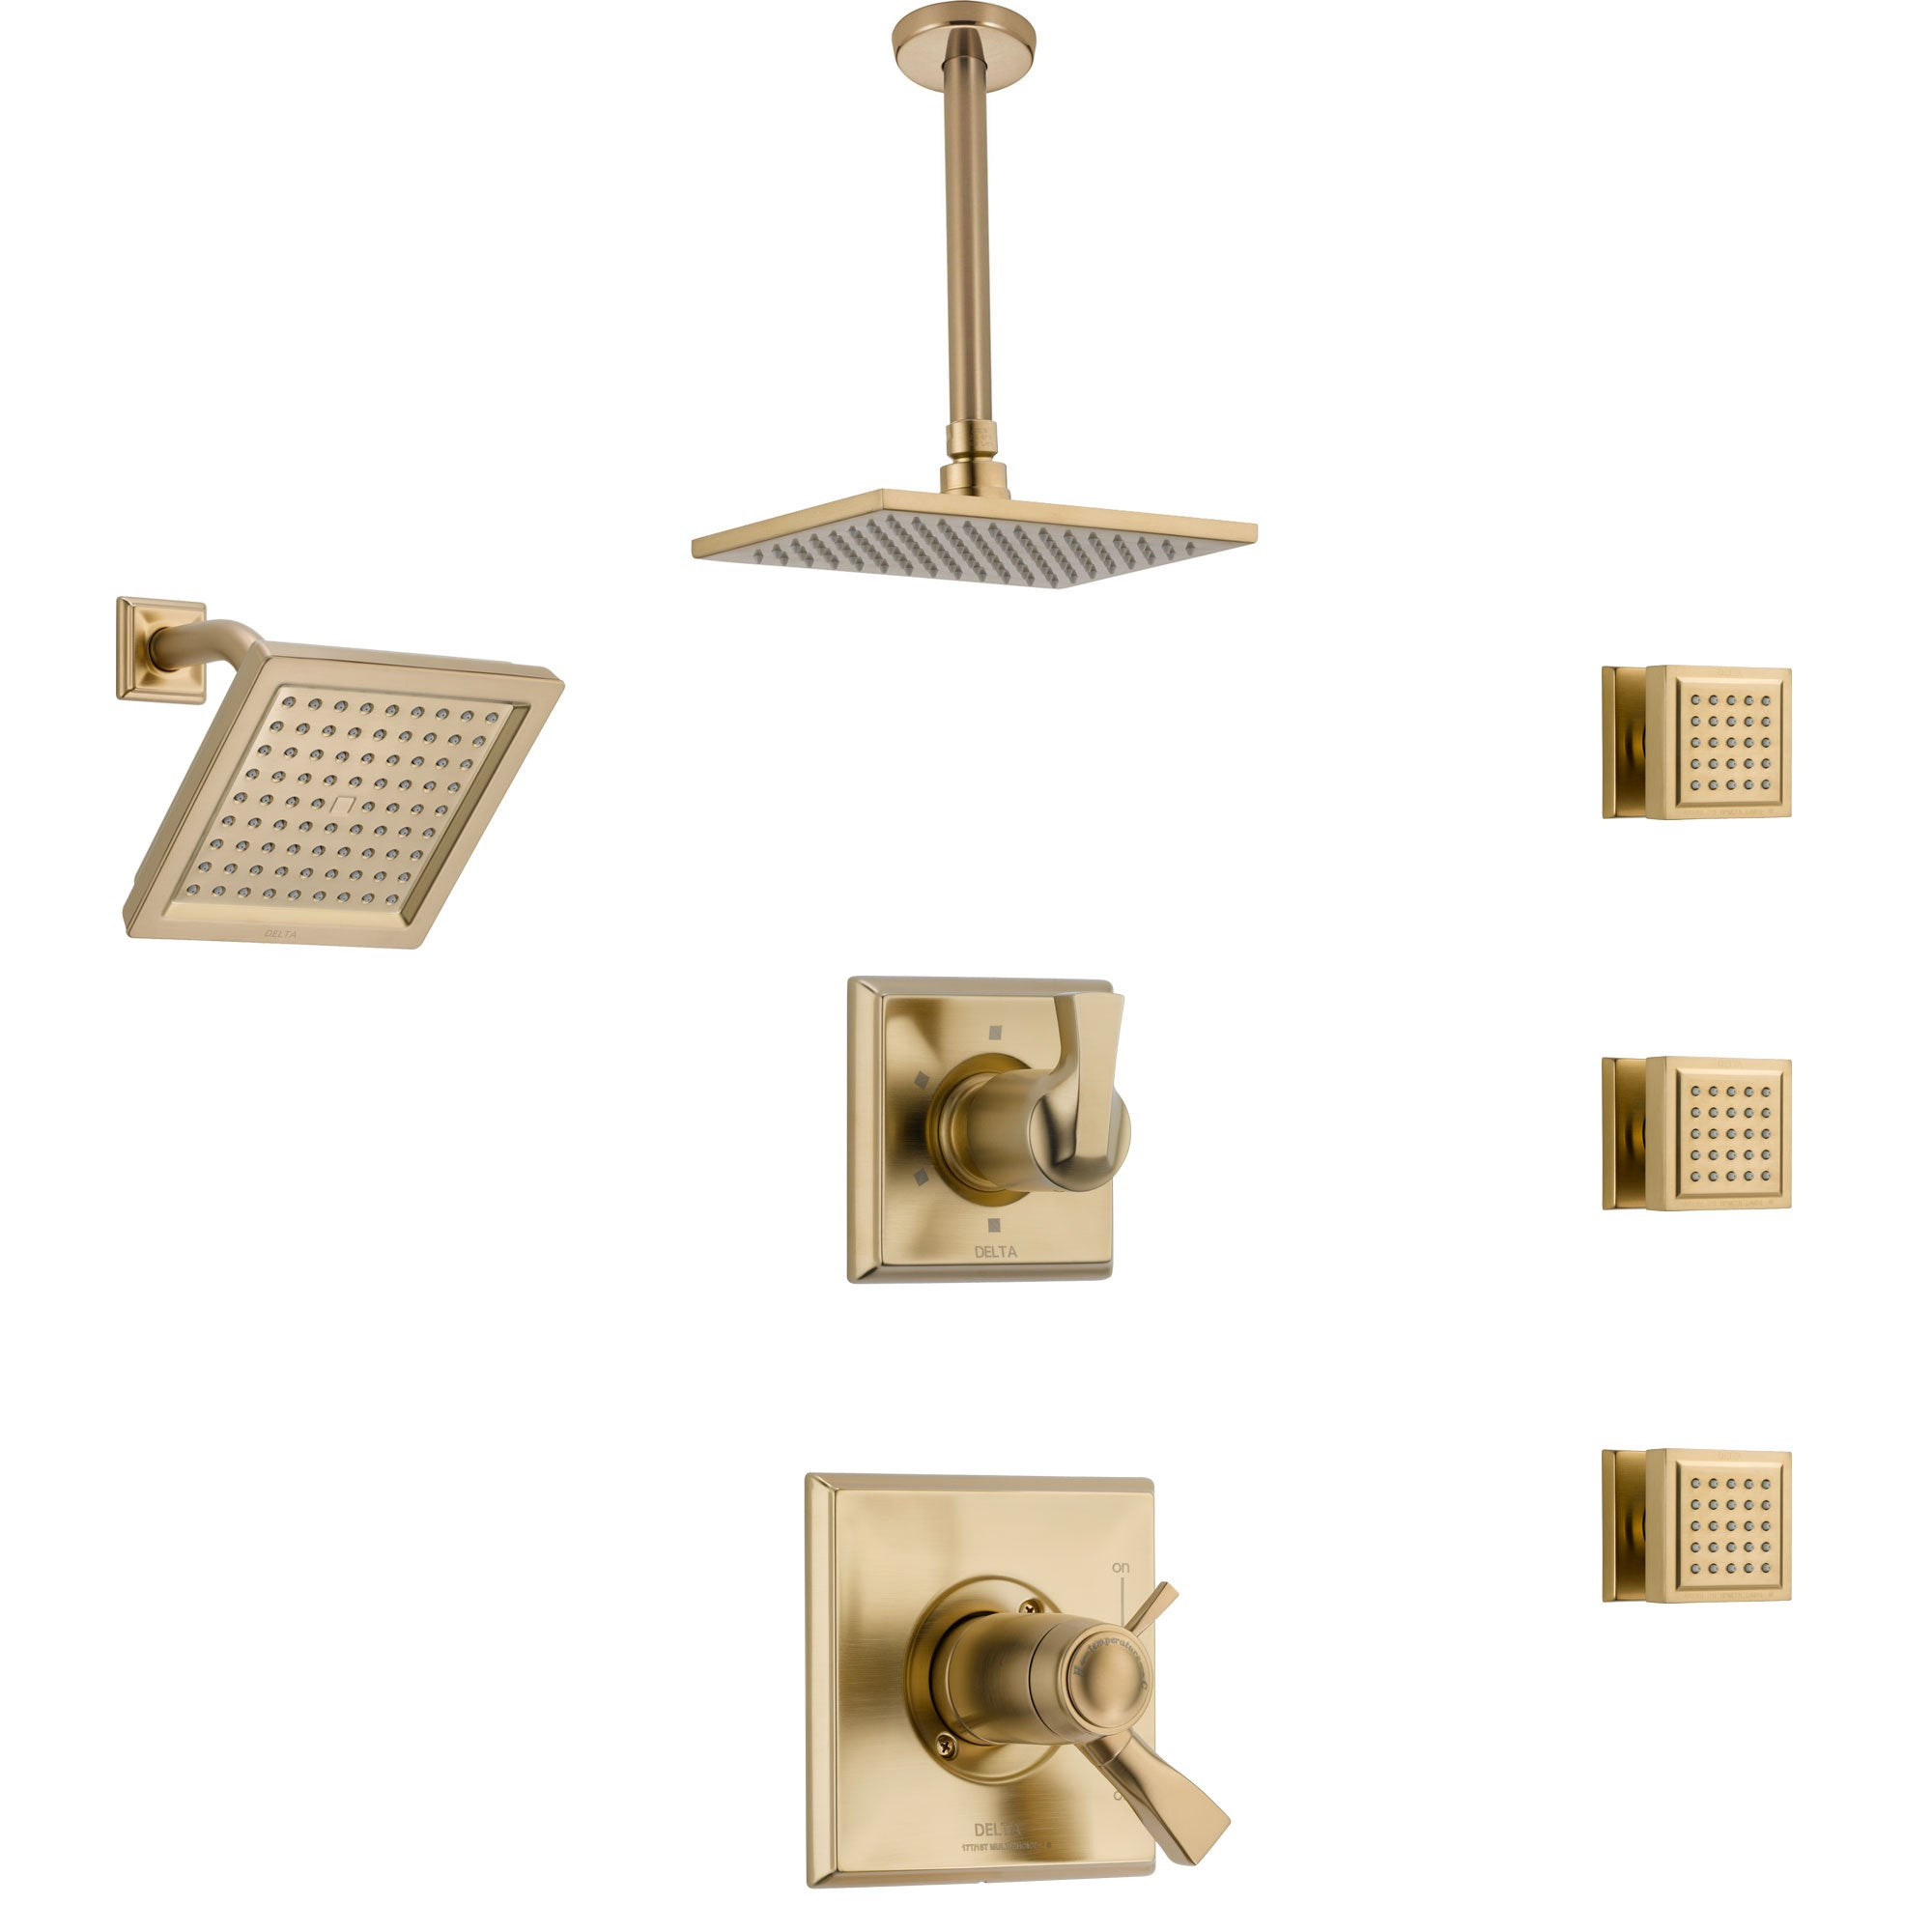 Delta Dryden Champagne Bronze Shower System with Dual Thermostatic Control, Diverter, Showerhead, Ceiling Showerhead, and 3 Body Sprays SS17T2512CZ3